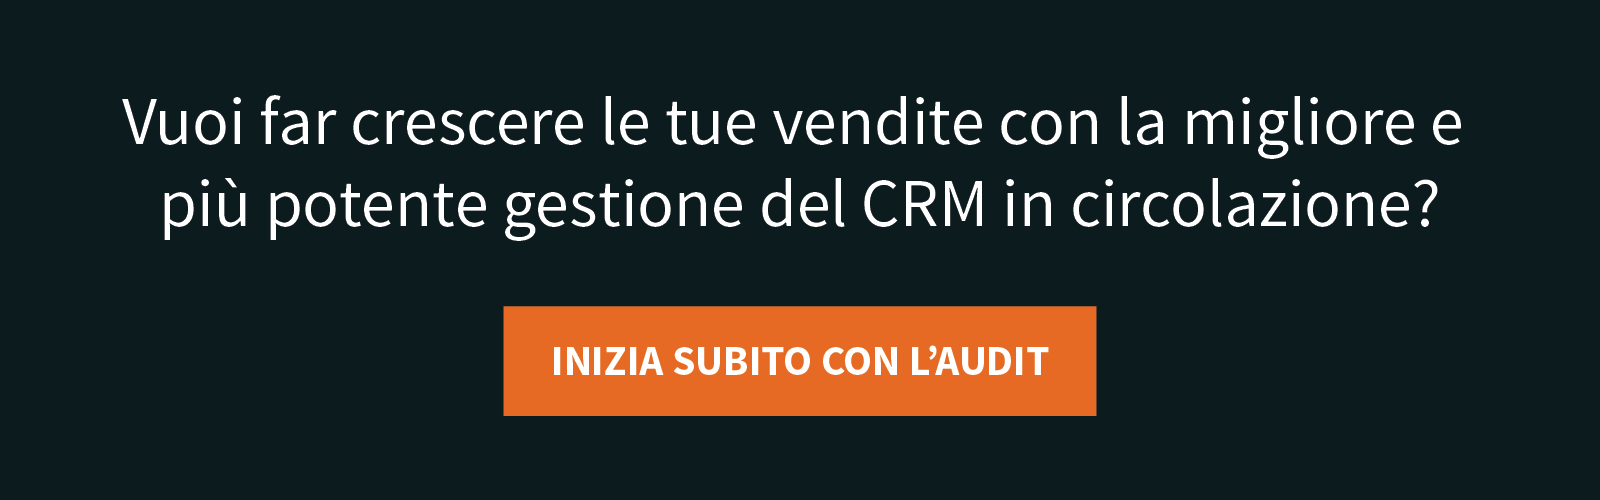 Strategia di gestione CRM performance